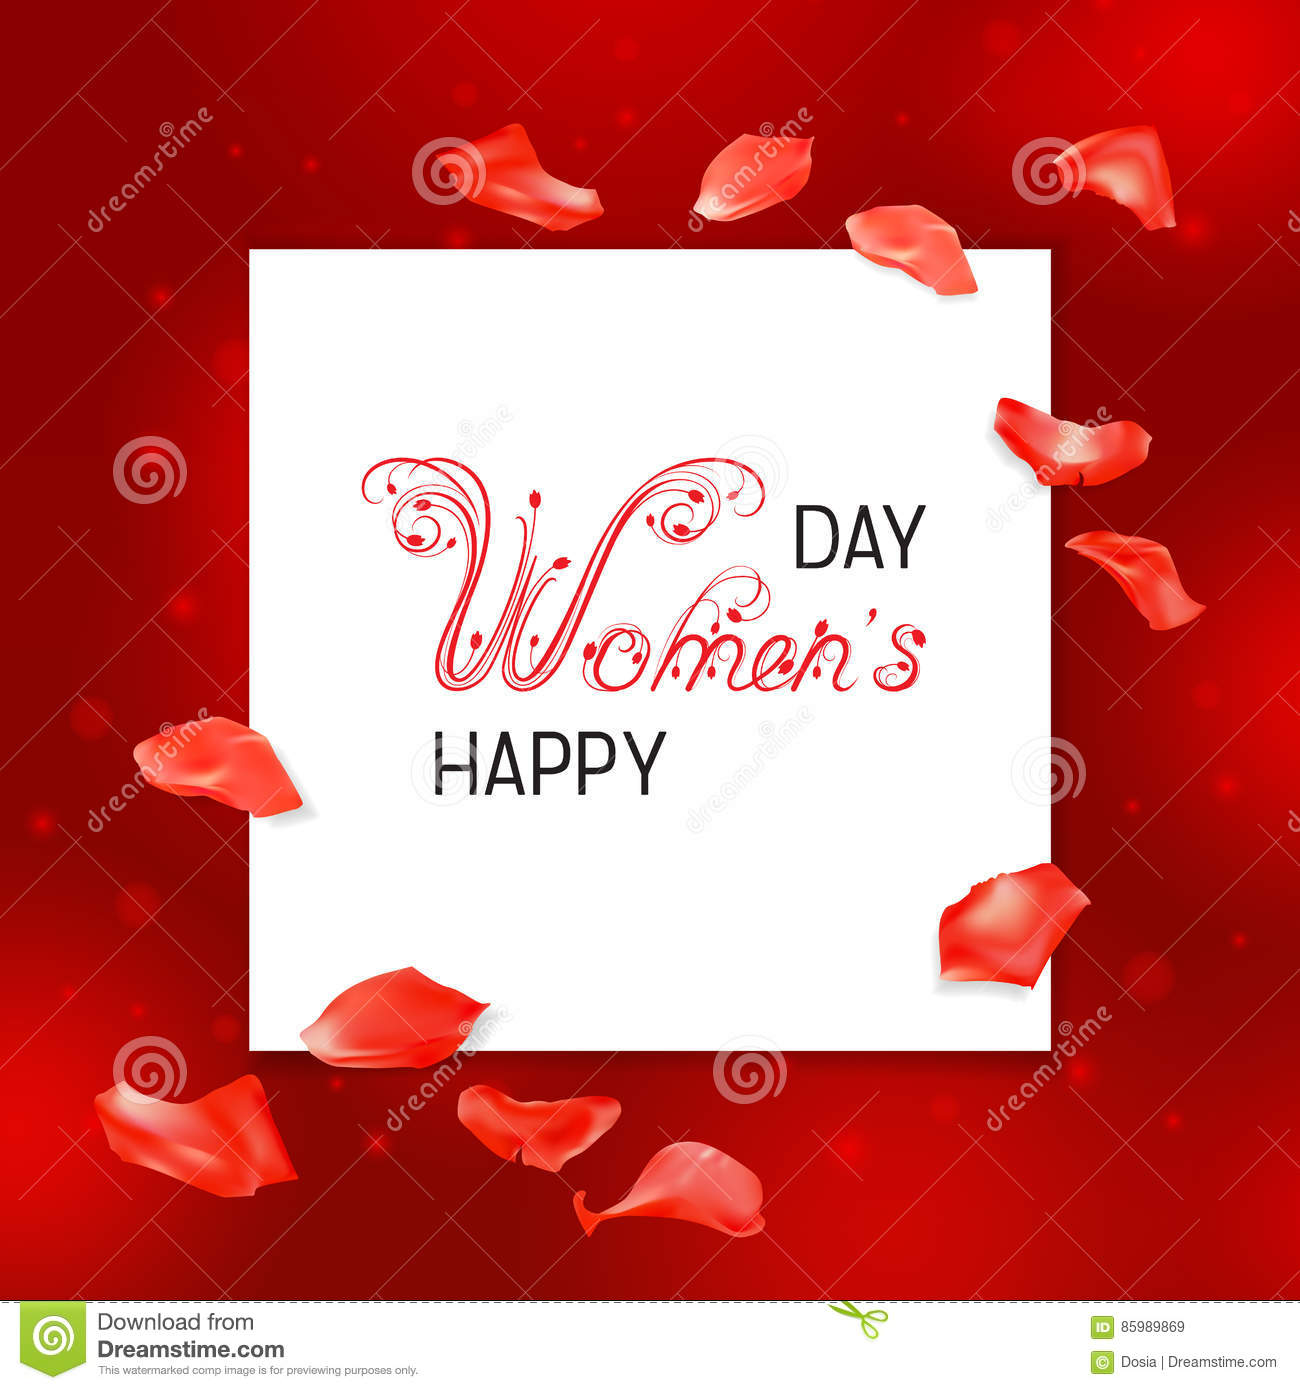 Free Download Women's Day Greeting Card Templates, Designs